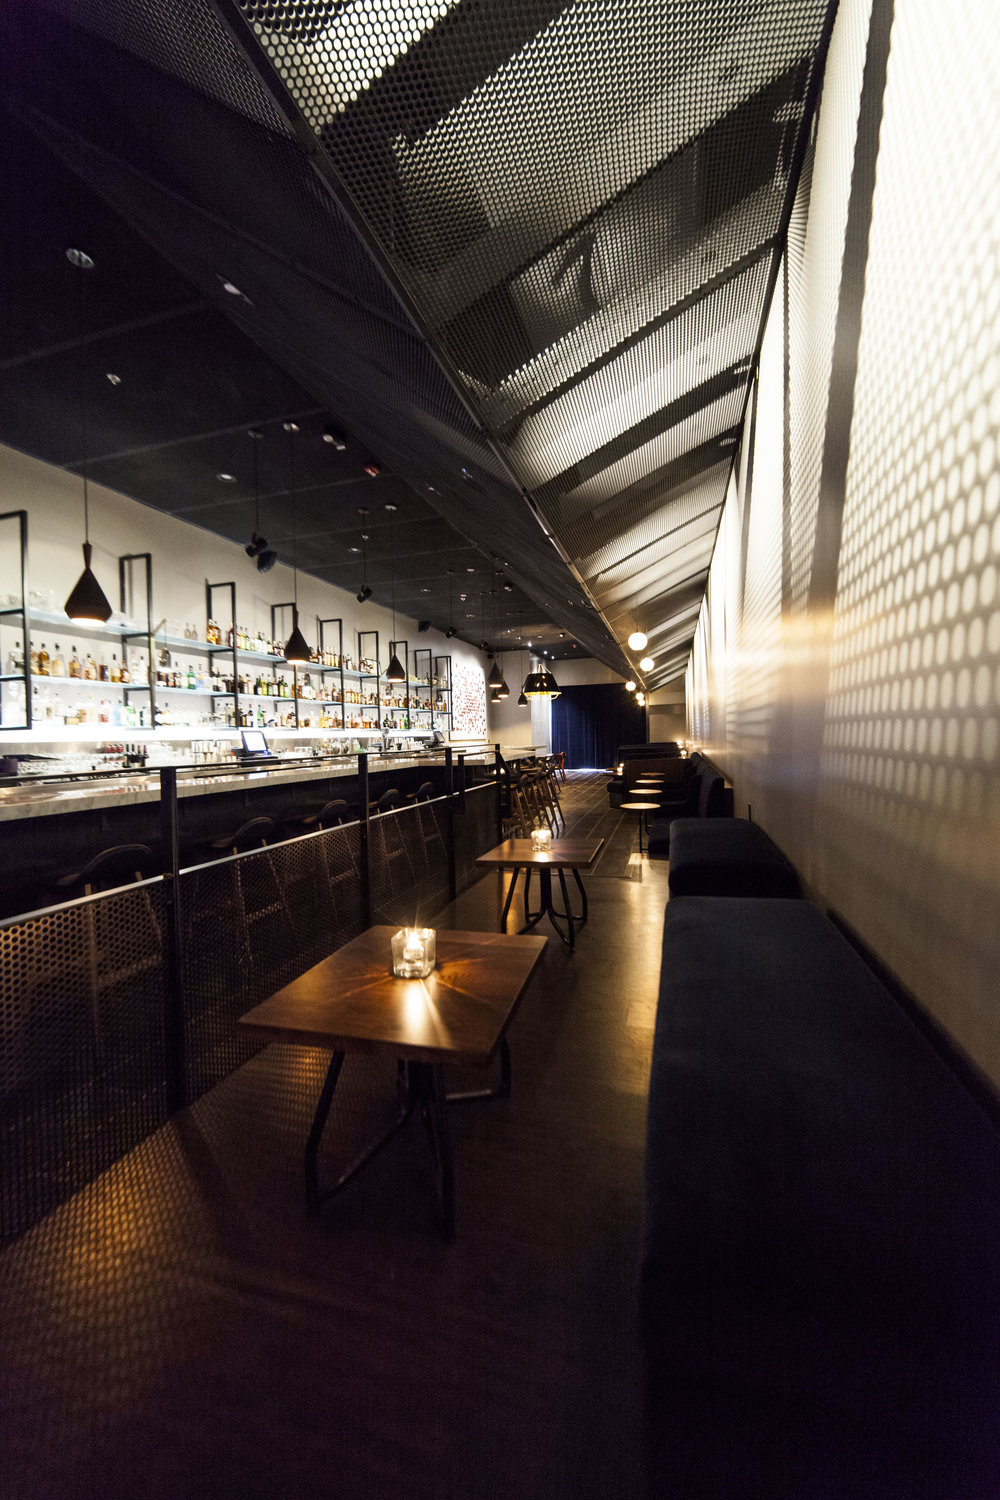 Nightcap Ann Arbor bar interior design by Synecdoche Design Studio